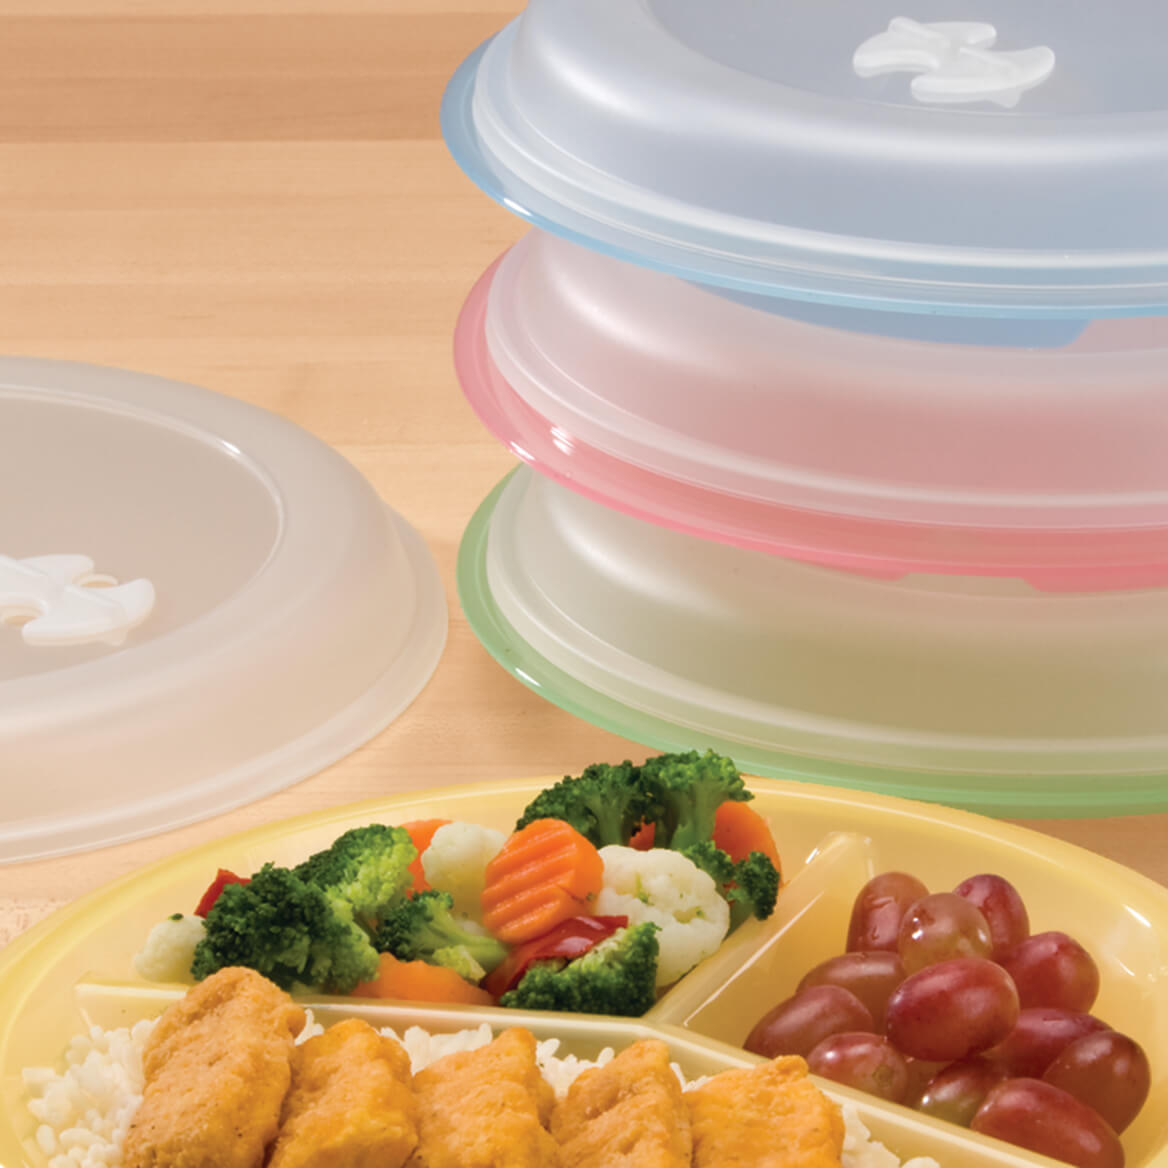 Divided Plates And Food Storage Containers-303973